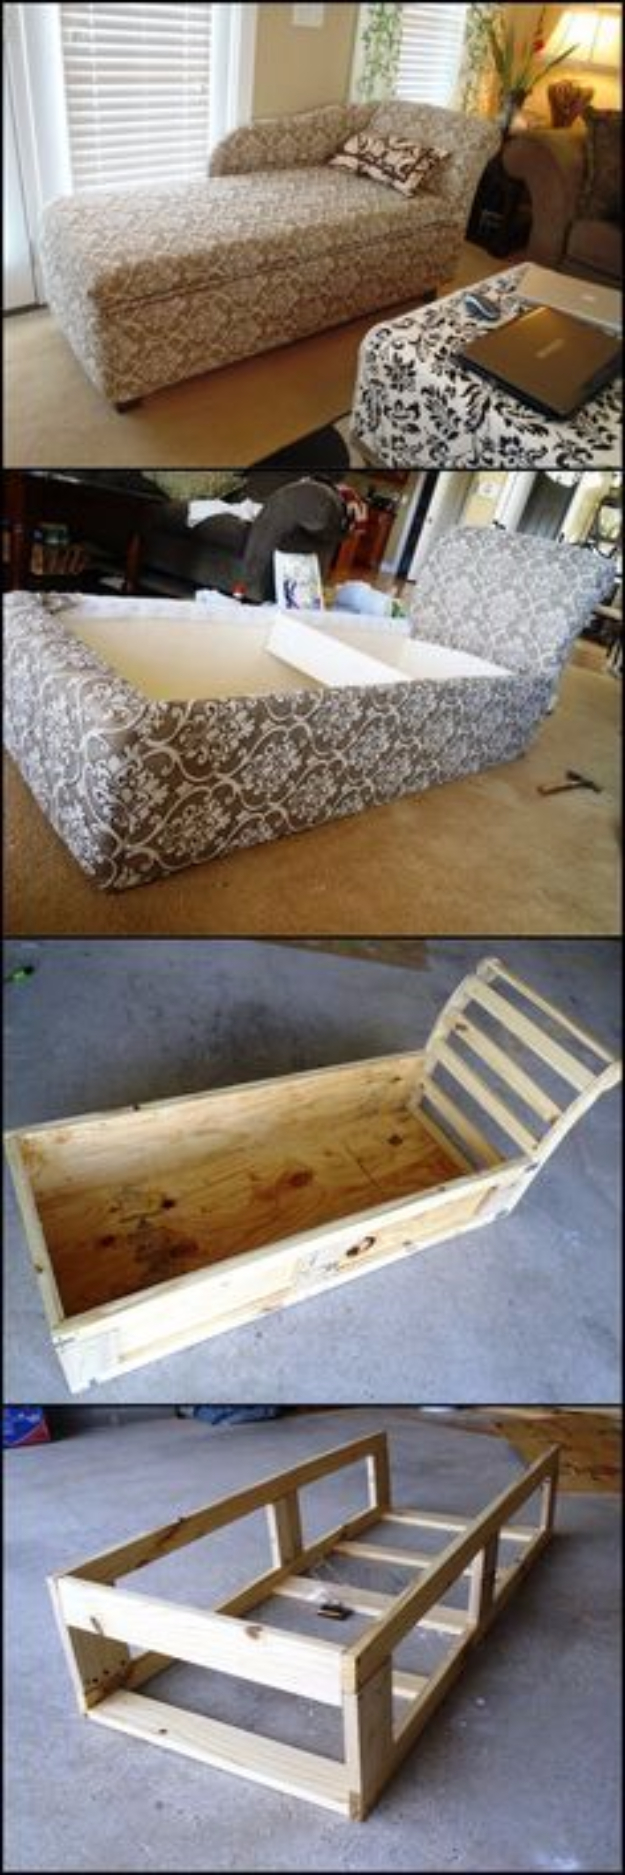 35 super cool diy sofas and couches page 4 of 4 diy joy for Build a chaise lounge